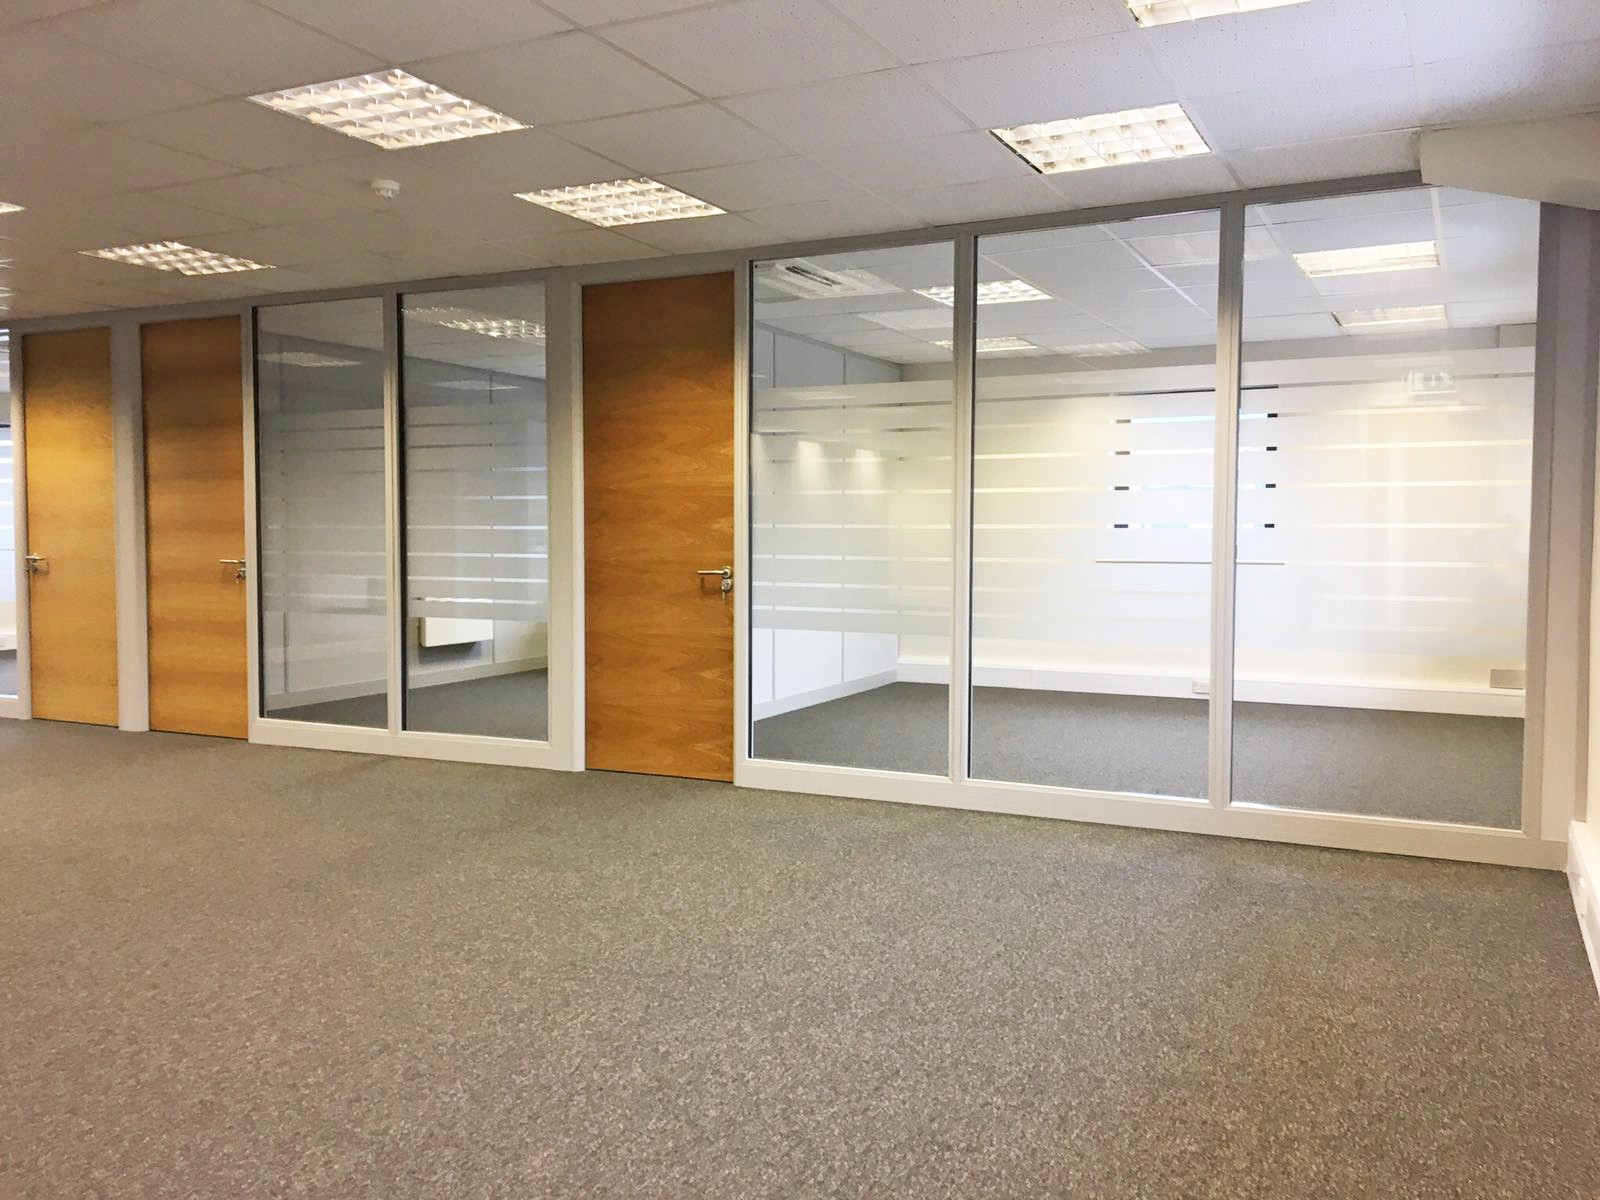 Case study internal glass office partitioning for Office design west yorkshire